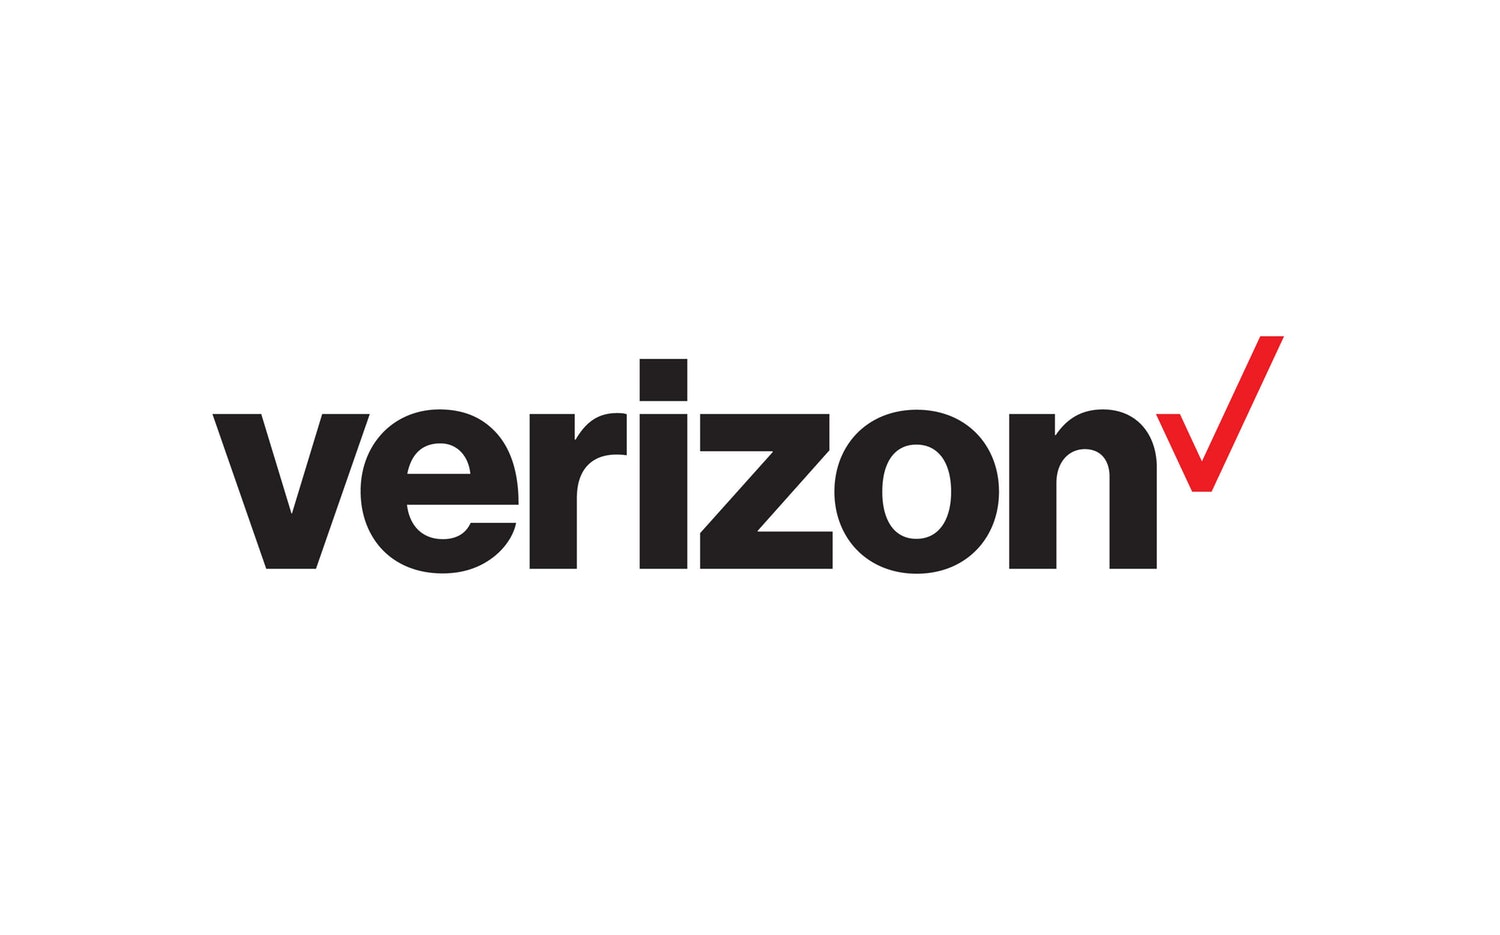 mb_verizon_01.jpg